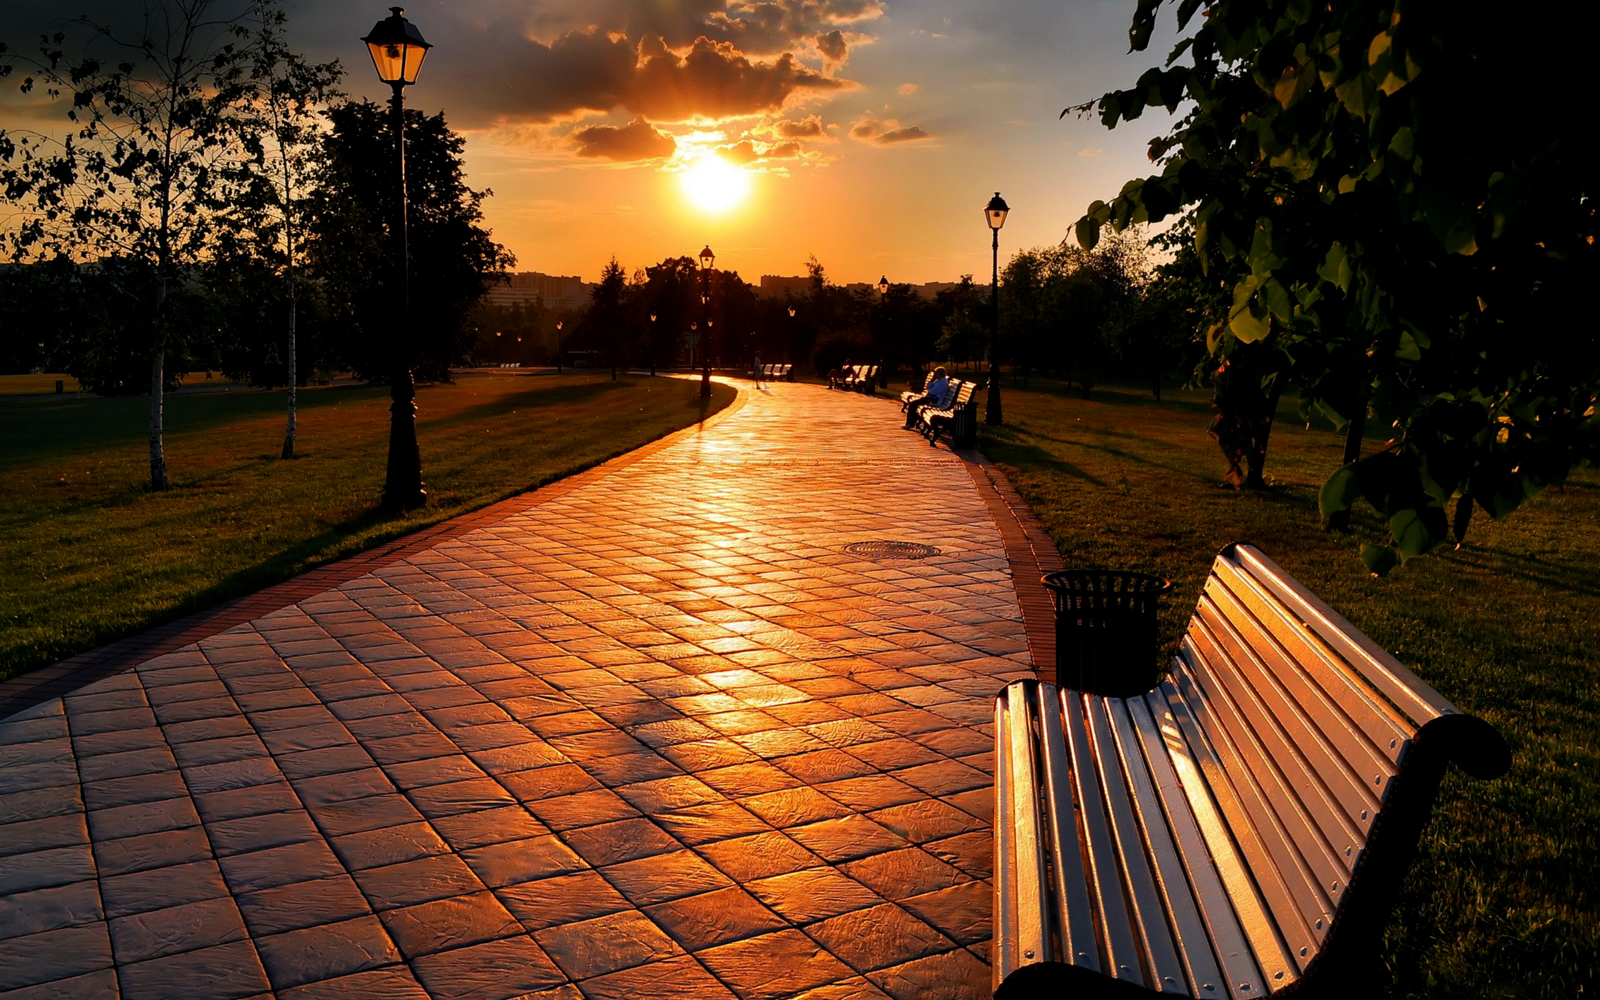 Central Wallpaper Empty Benches Hd Wallpapers